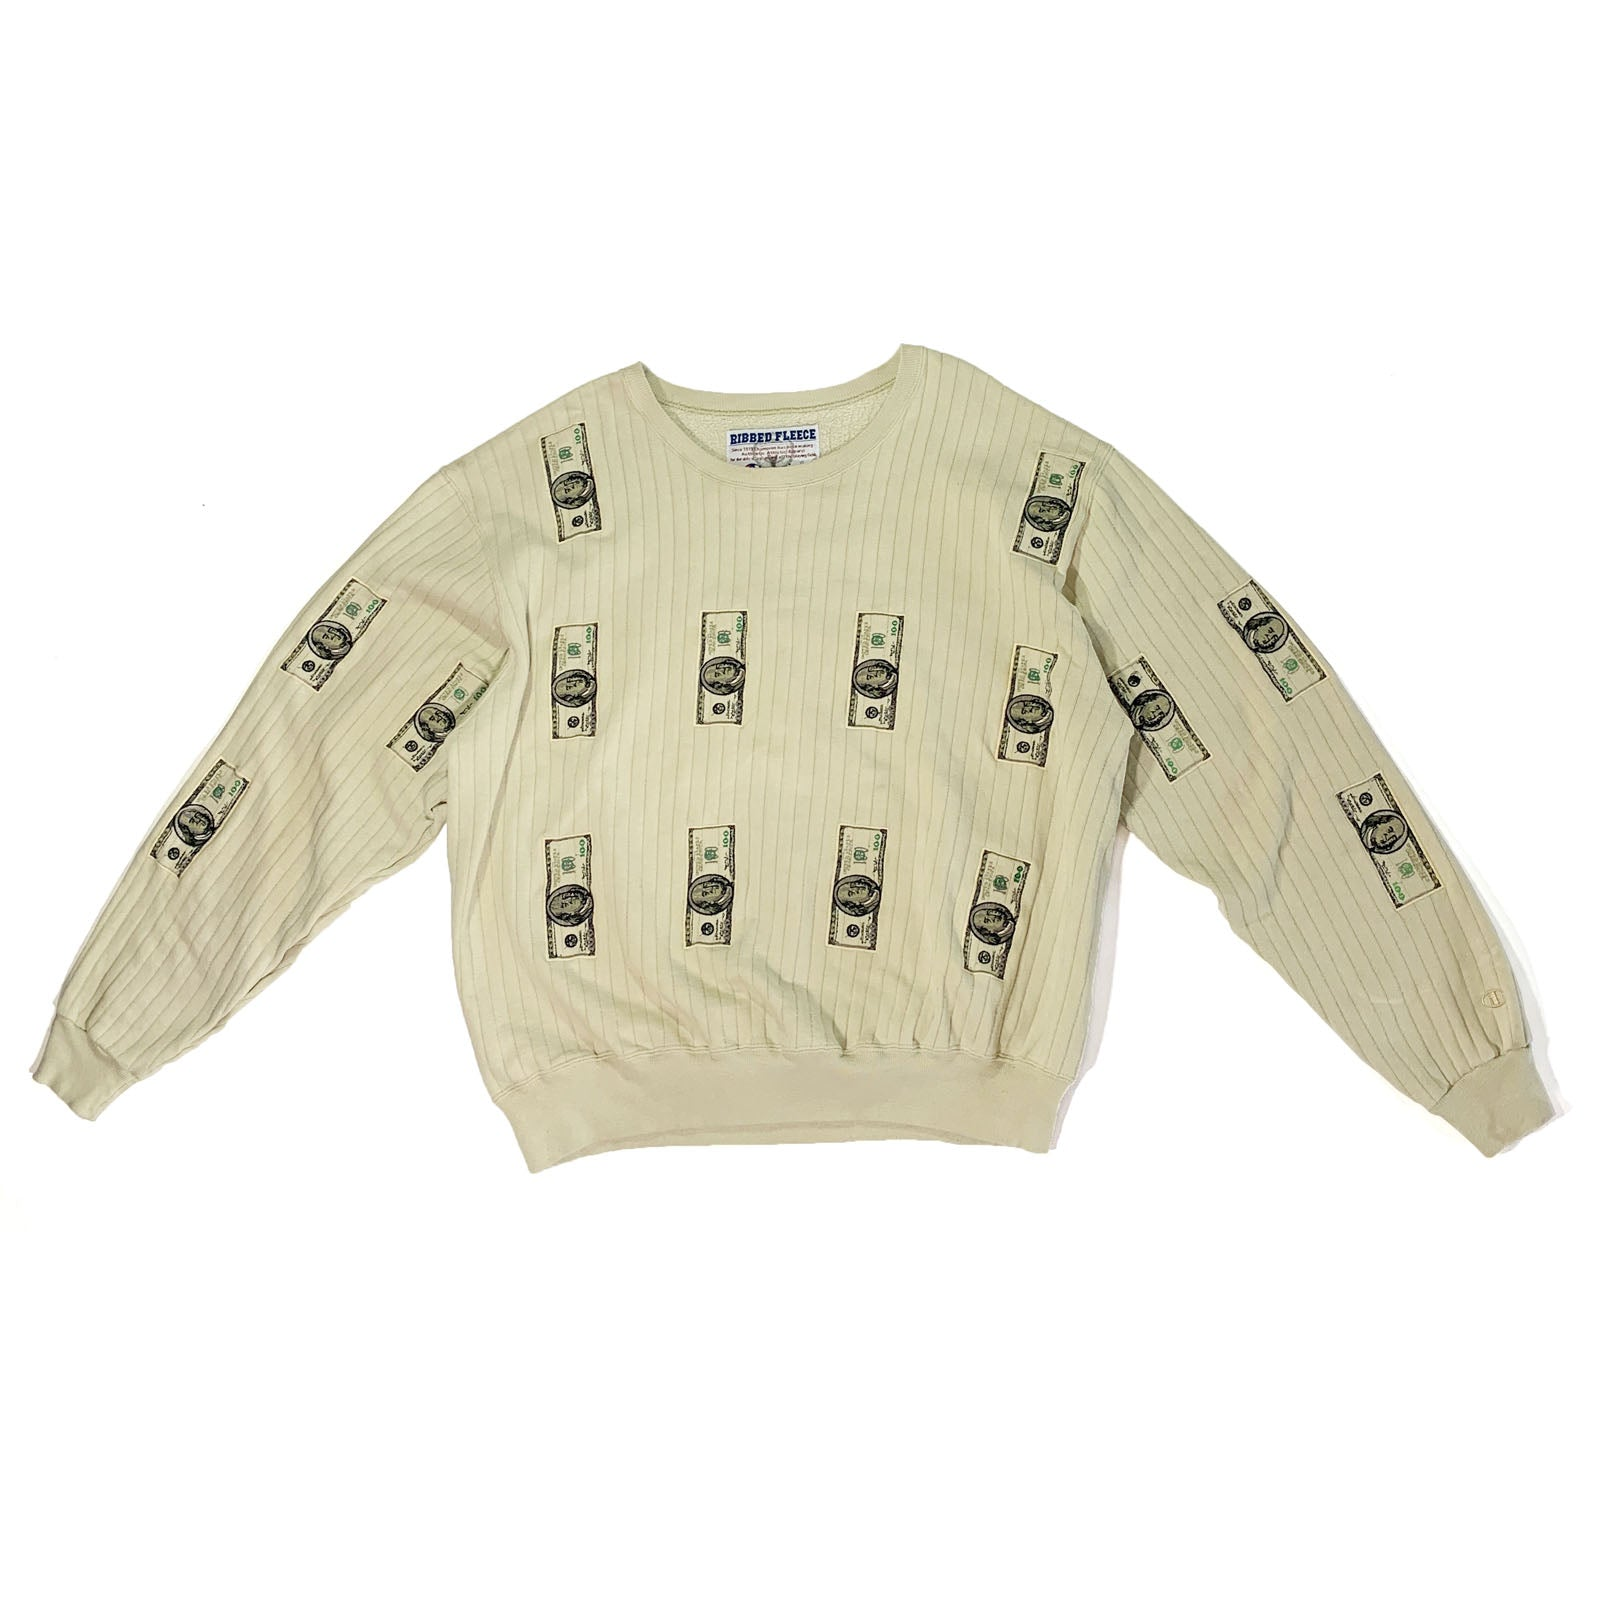 "BANDULU "" FEDERAL RESERVE "" XL RIBBED CREW"